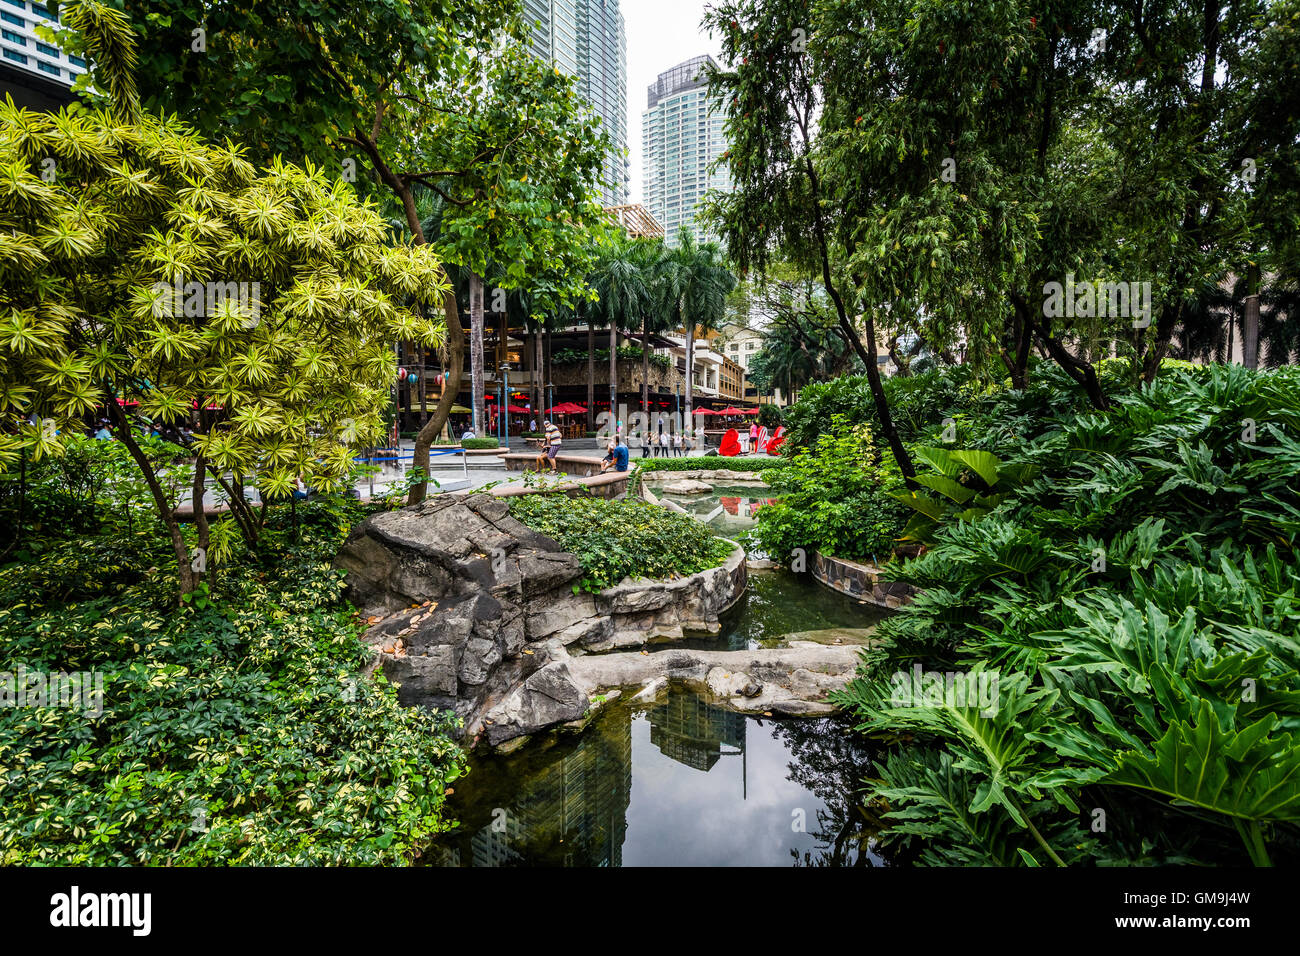 Garden And Skyscrapers At Greenbelt Park In Ayala Makati Metro Stock Photo Royalty Free